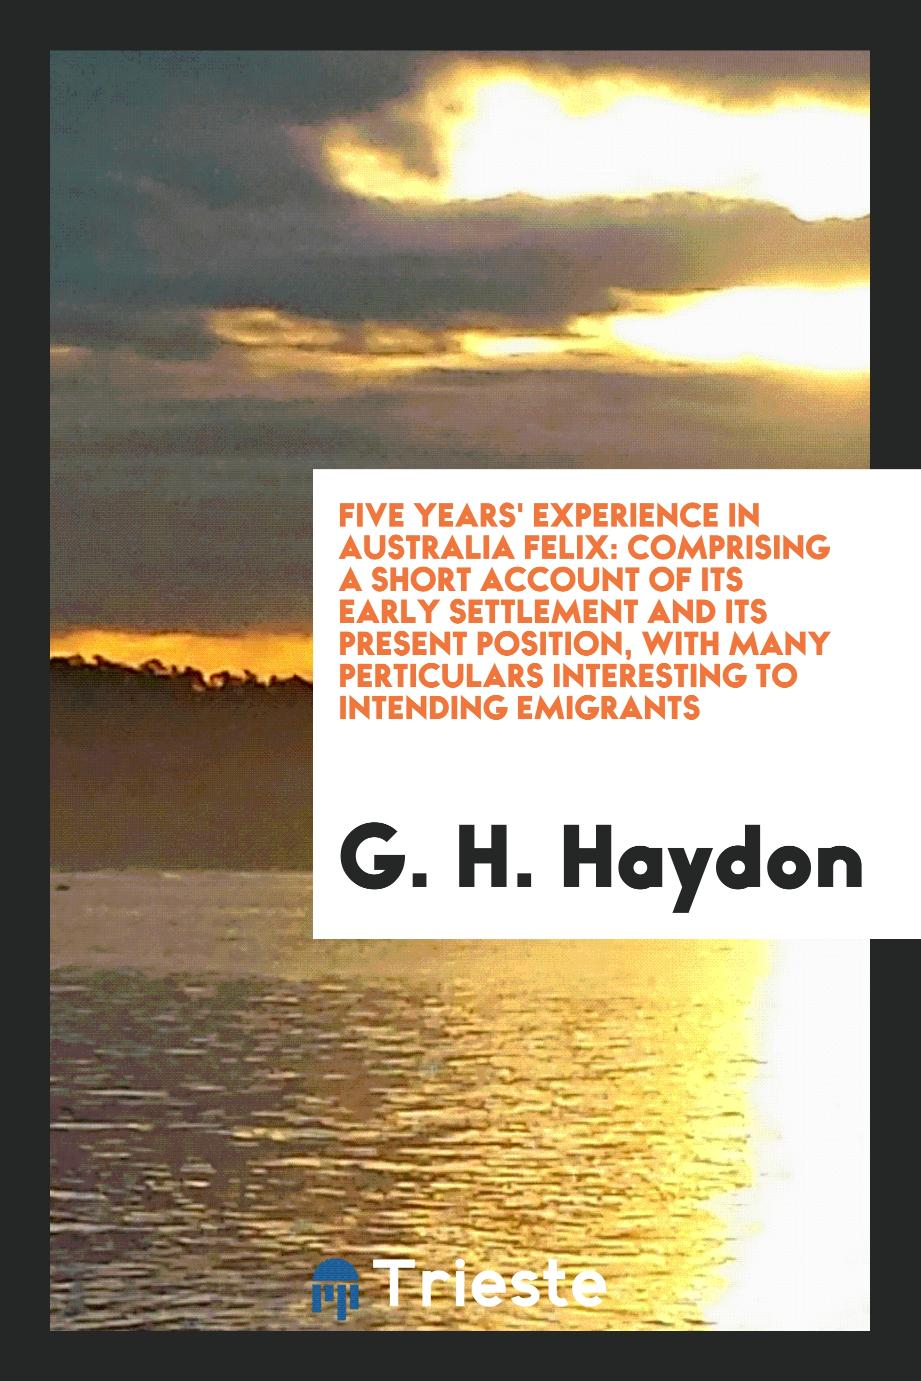 Five Years' Experience in Australia Felix: Comprising a Short Account of Its Early Settlement and Its Present Position, with Many Perticulars Interesting to Intending Emigrants